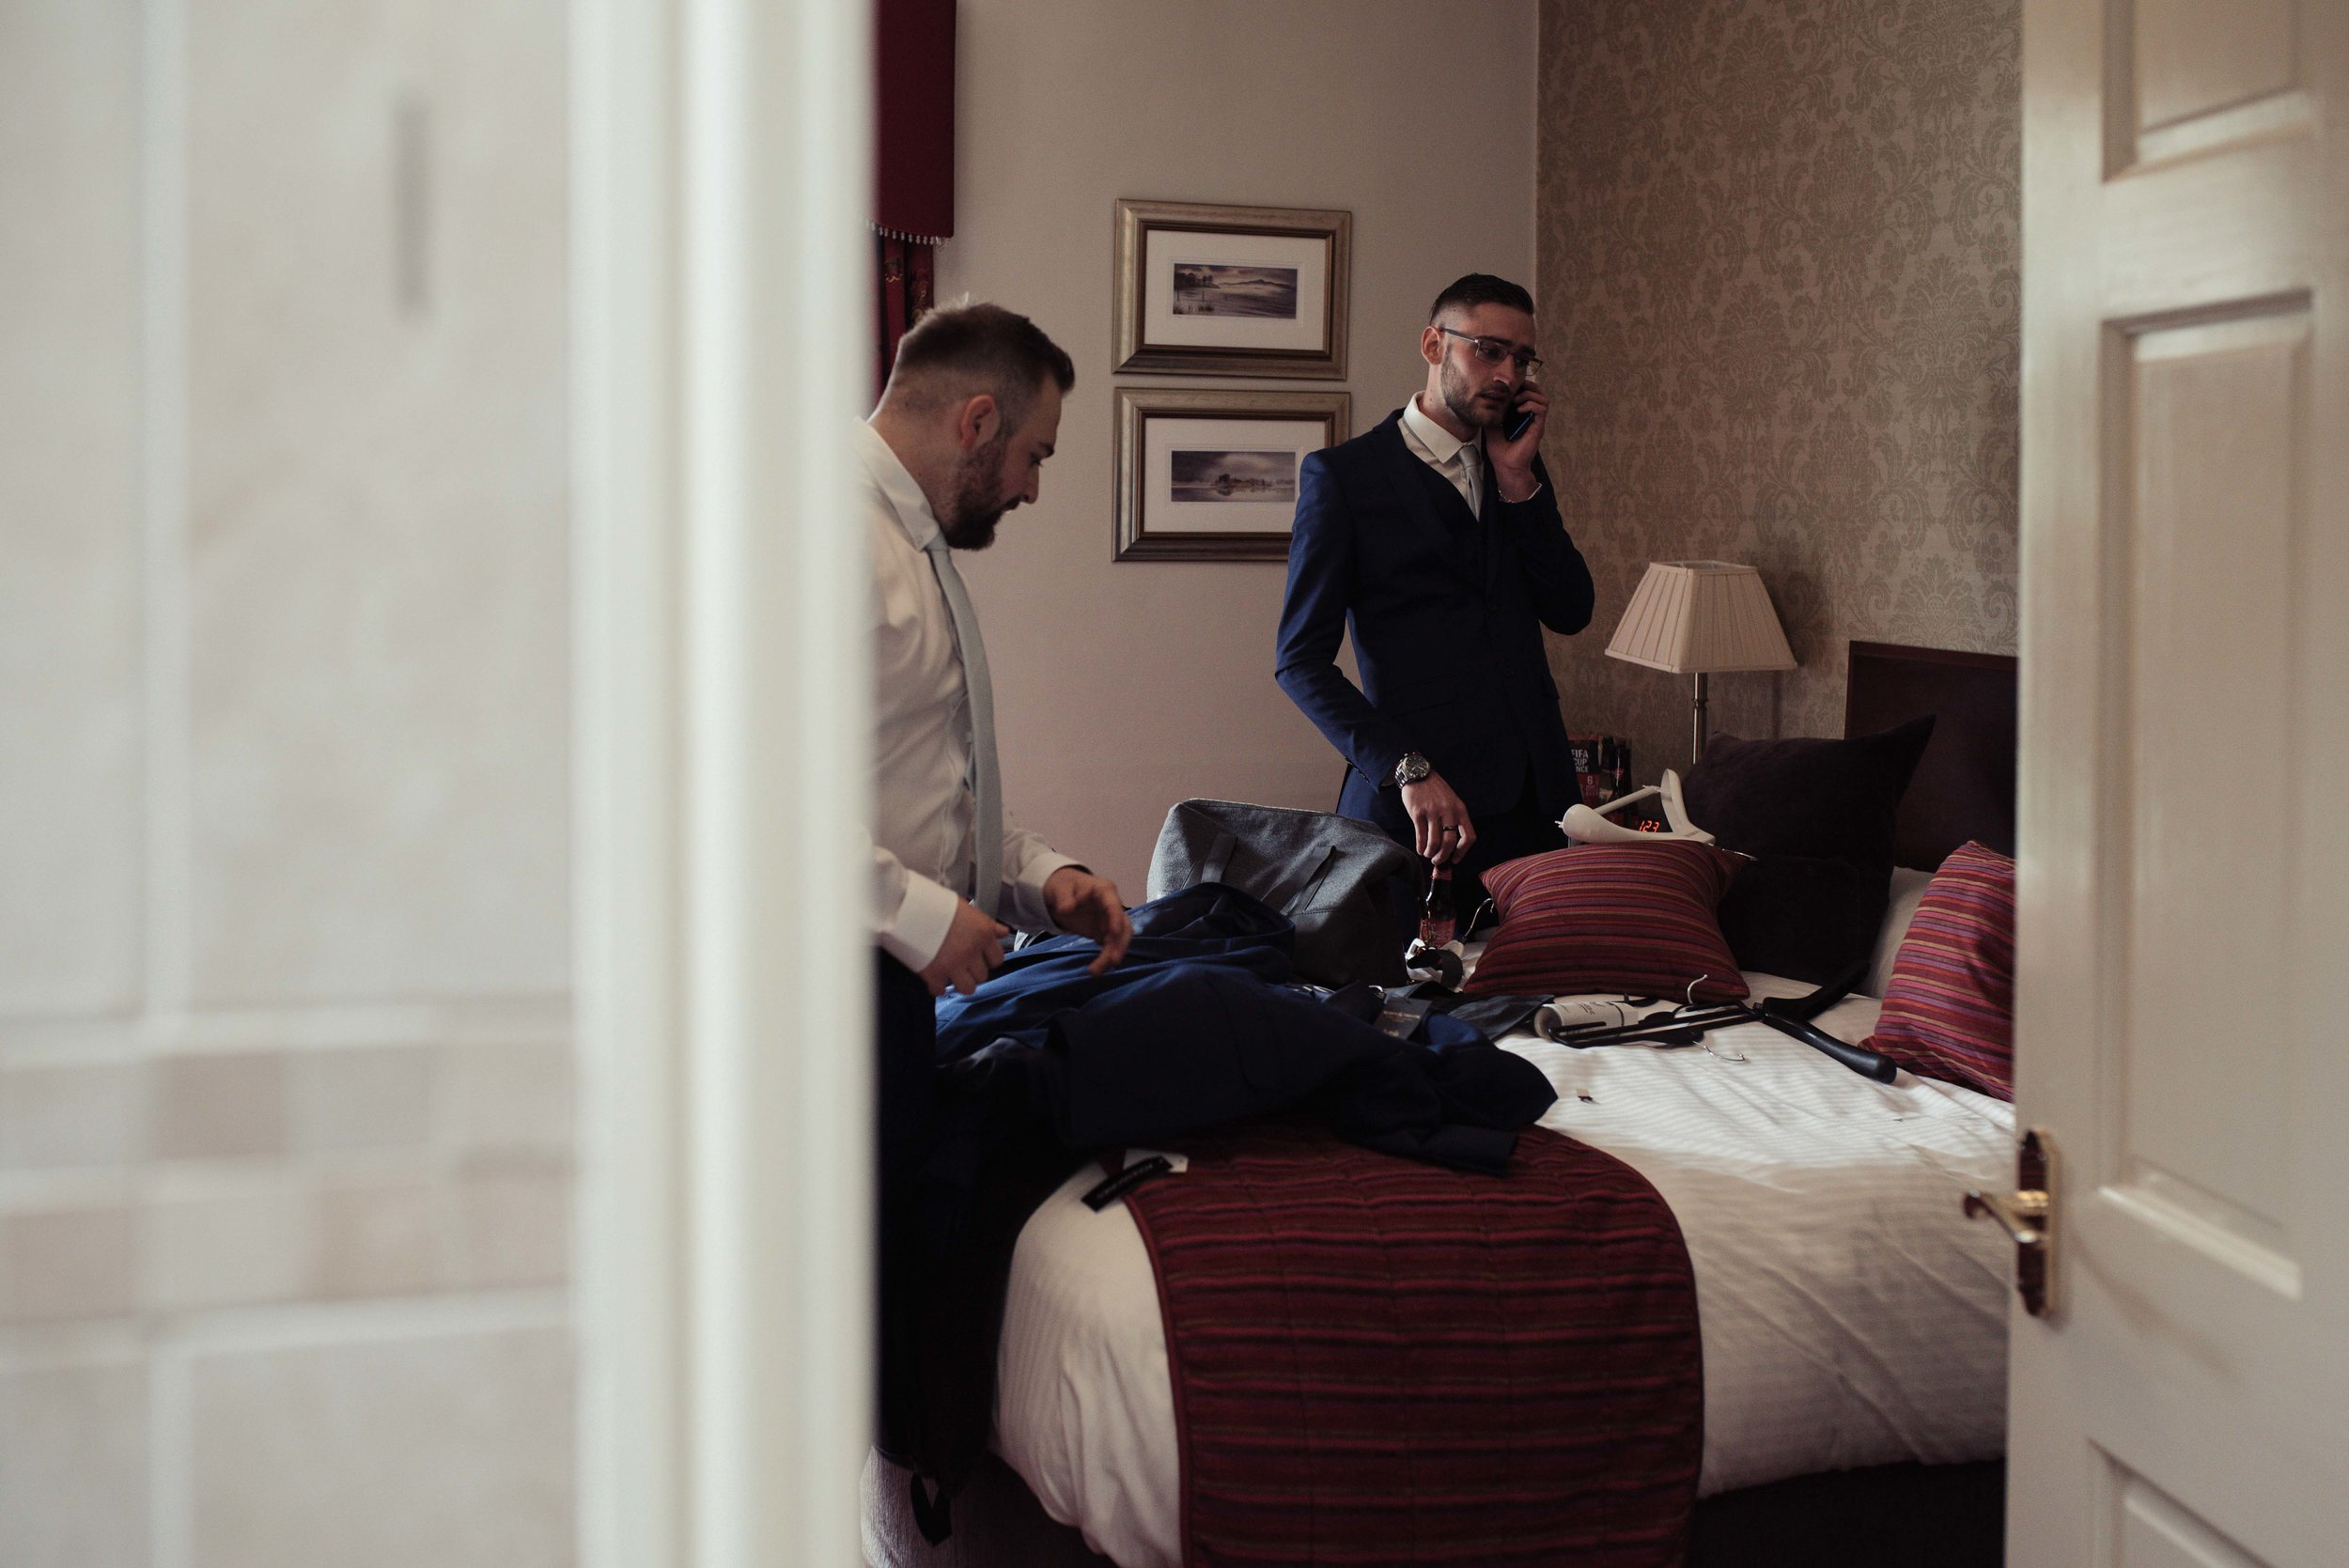 The best man makes a phone call as the groom gets ready